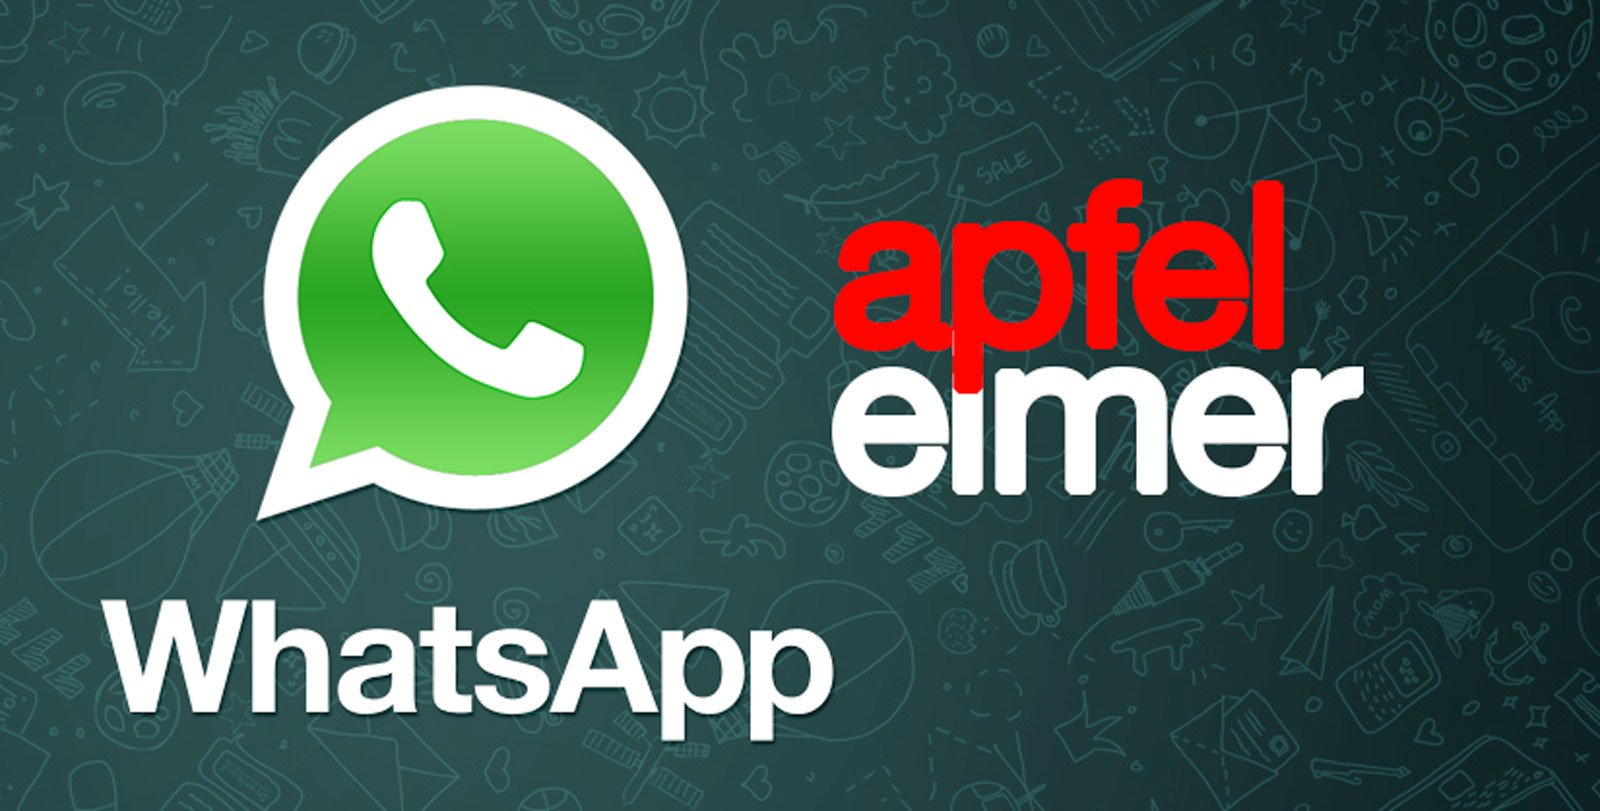 Apfeleimer iPhone News per WhatsApp aufs Handy 1